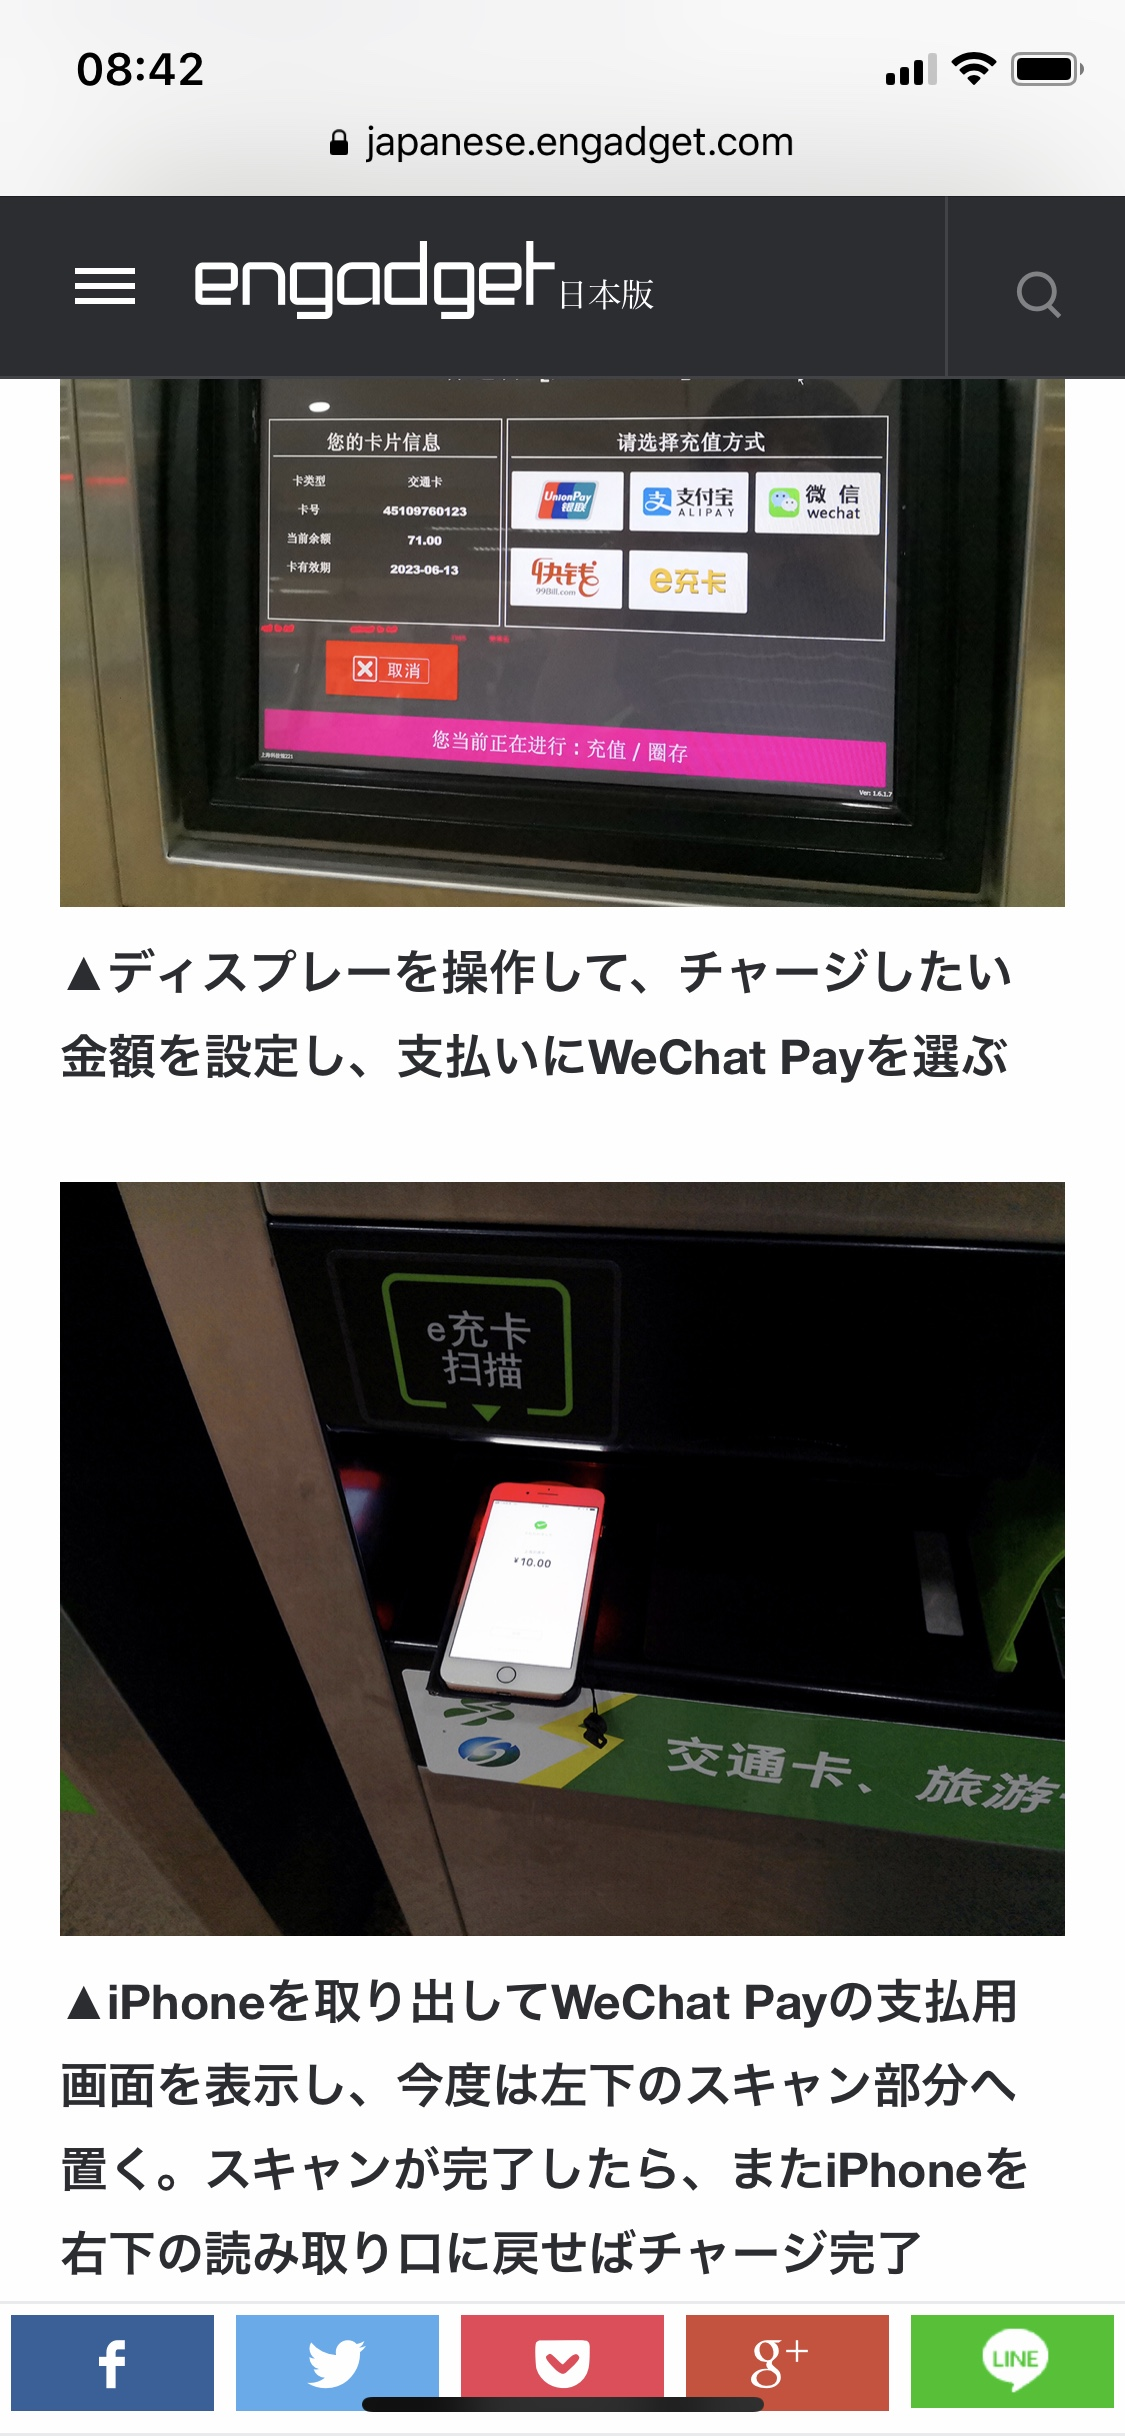 Union Pay and QR Code WeChat Pay are recharge options